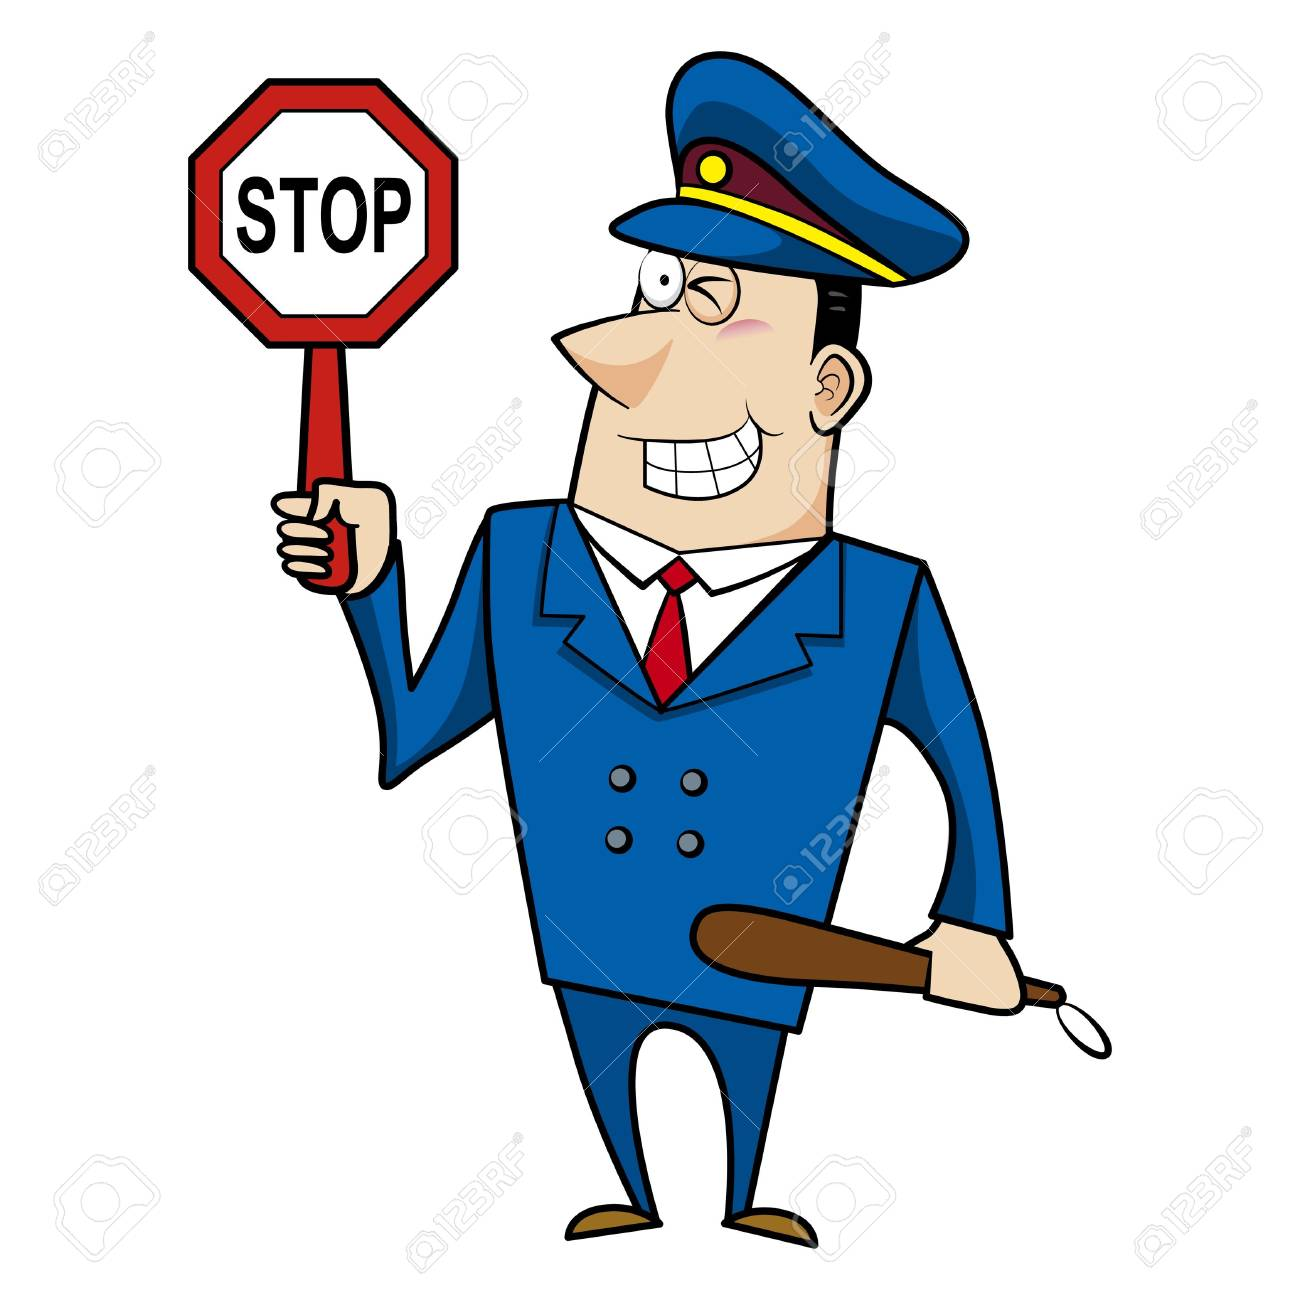 1300x1300 Male Cartoon Police Officer Holding A Stop Sign Royalty Free